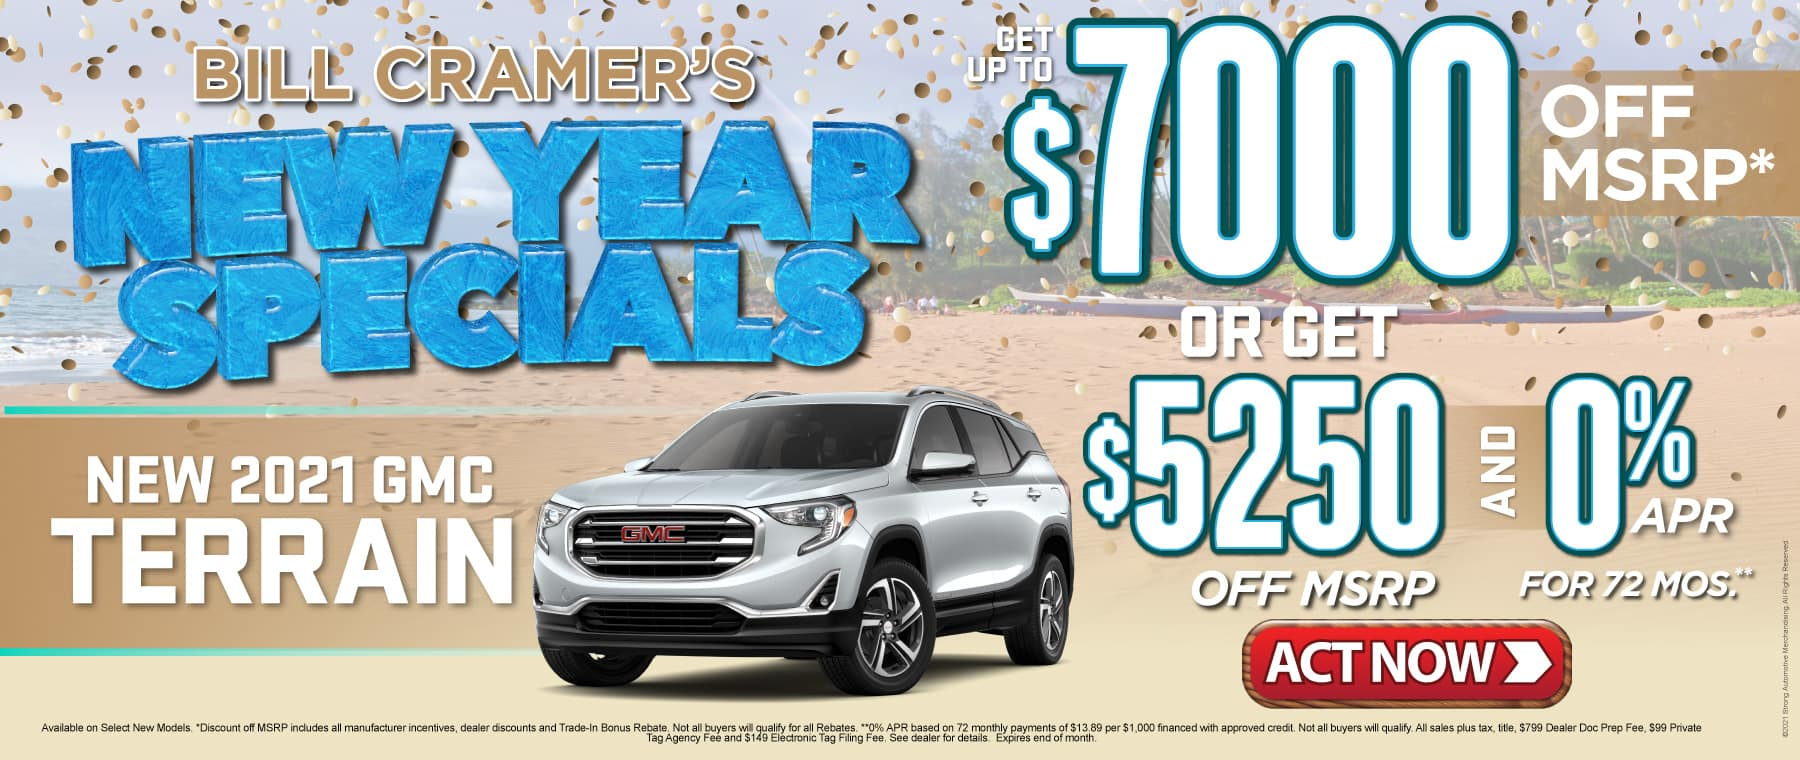 New 2021 GMC Terrain - Get up to $7000 off msrp - Act Now